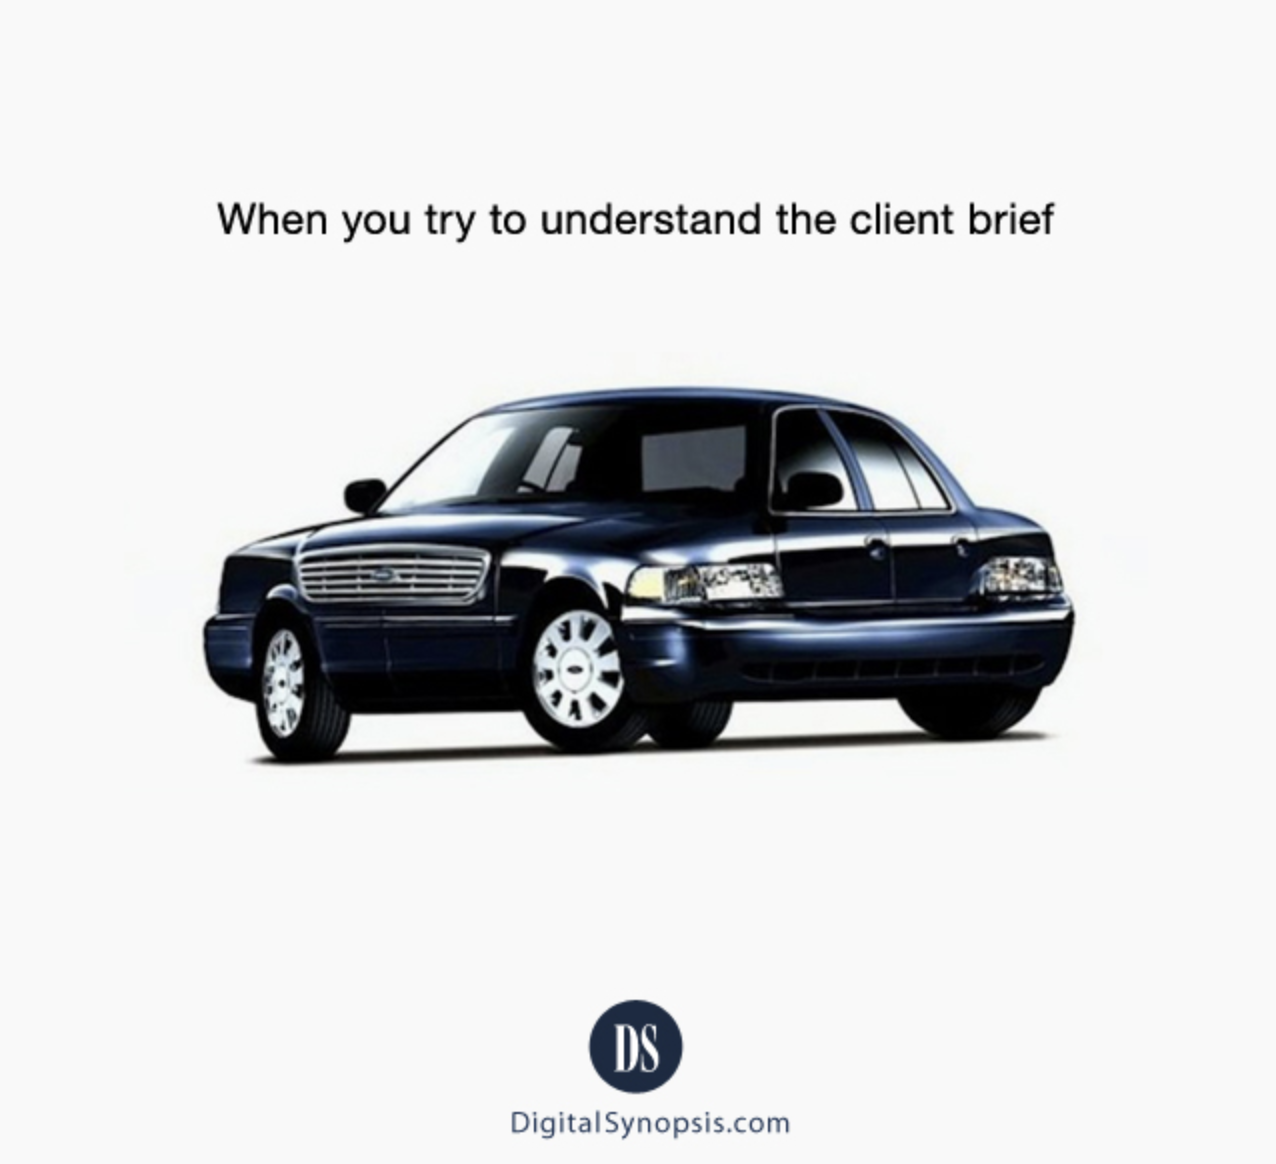 When you try to understand the client brief